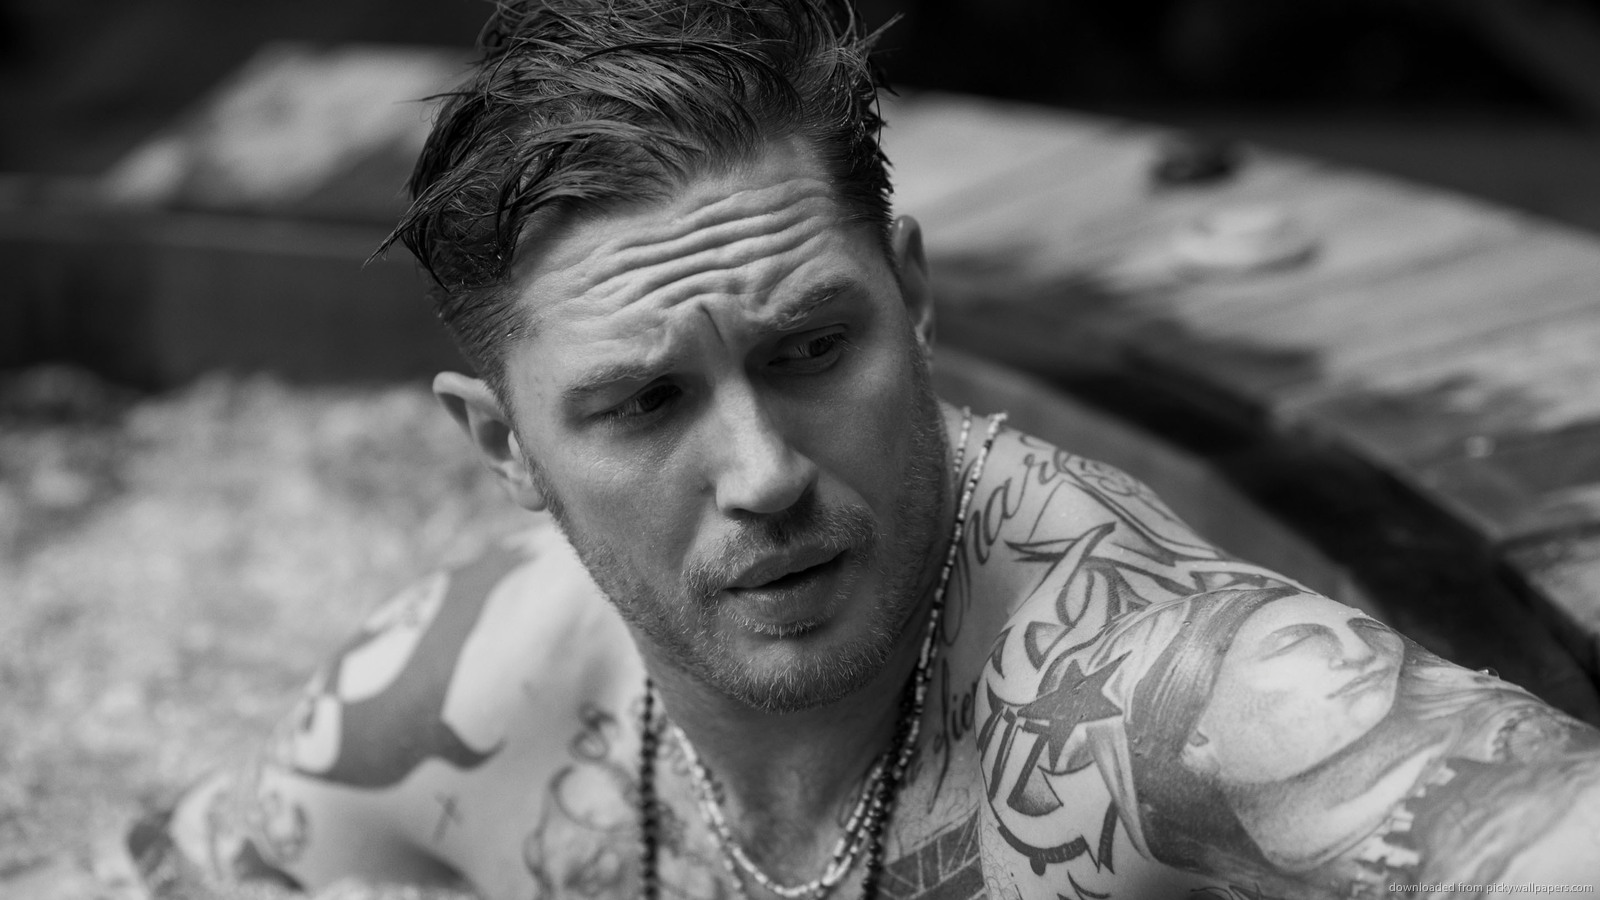 Tom Hardy images 50 wallpapers   Qularicom 1600x900